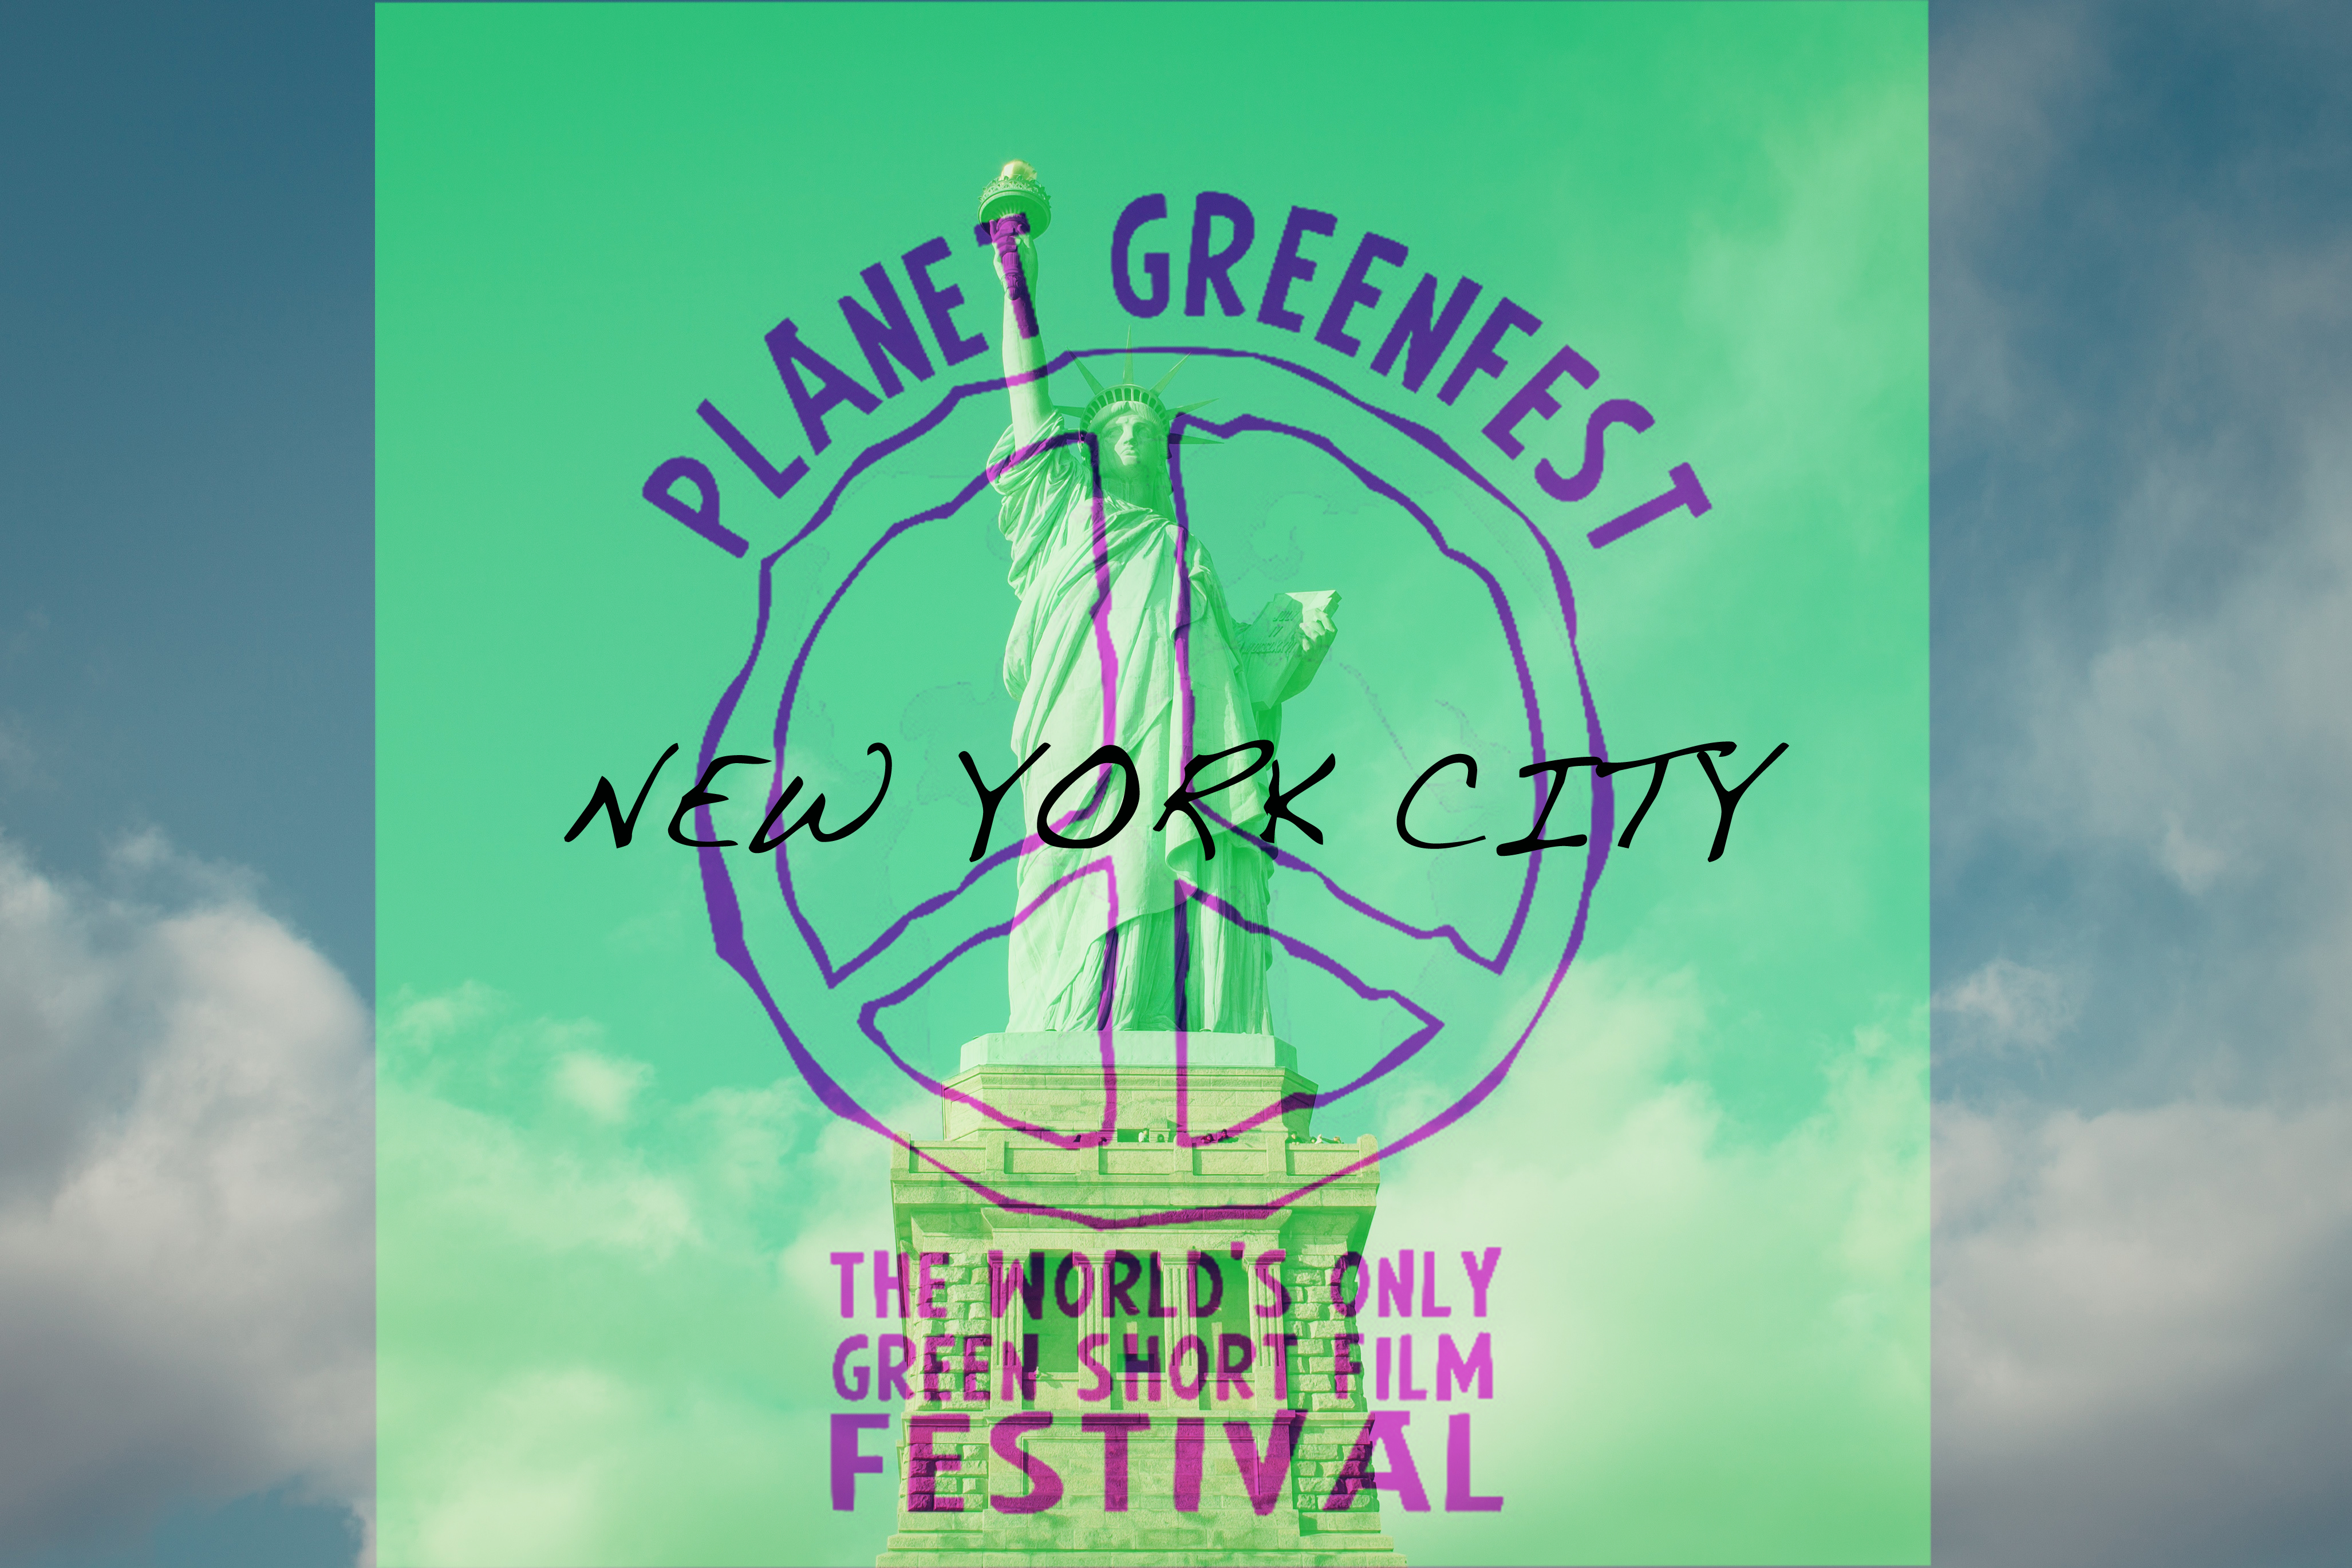 Planet Greenfest NYC